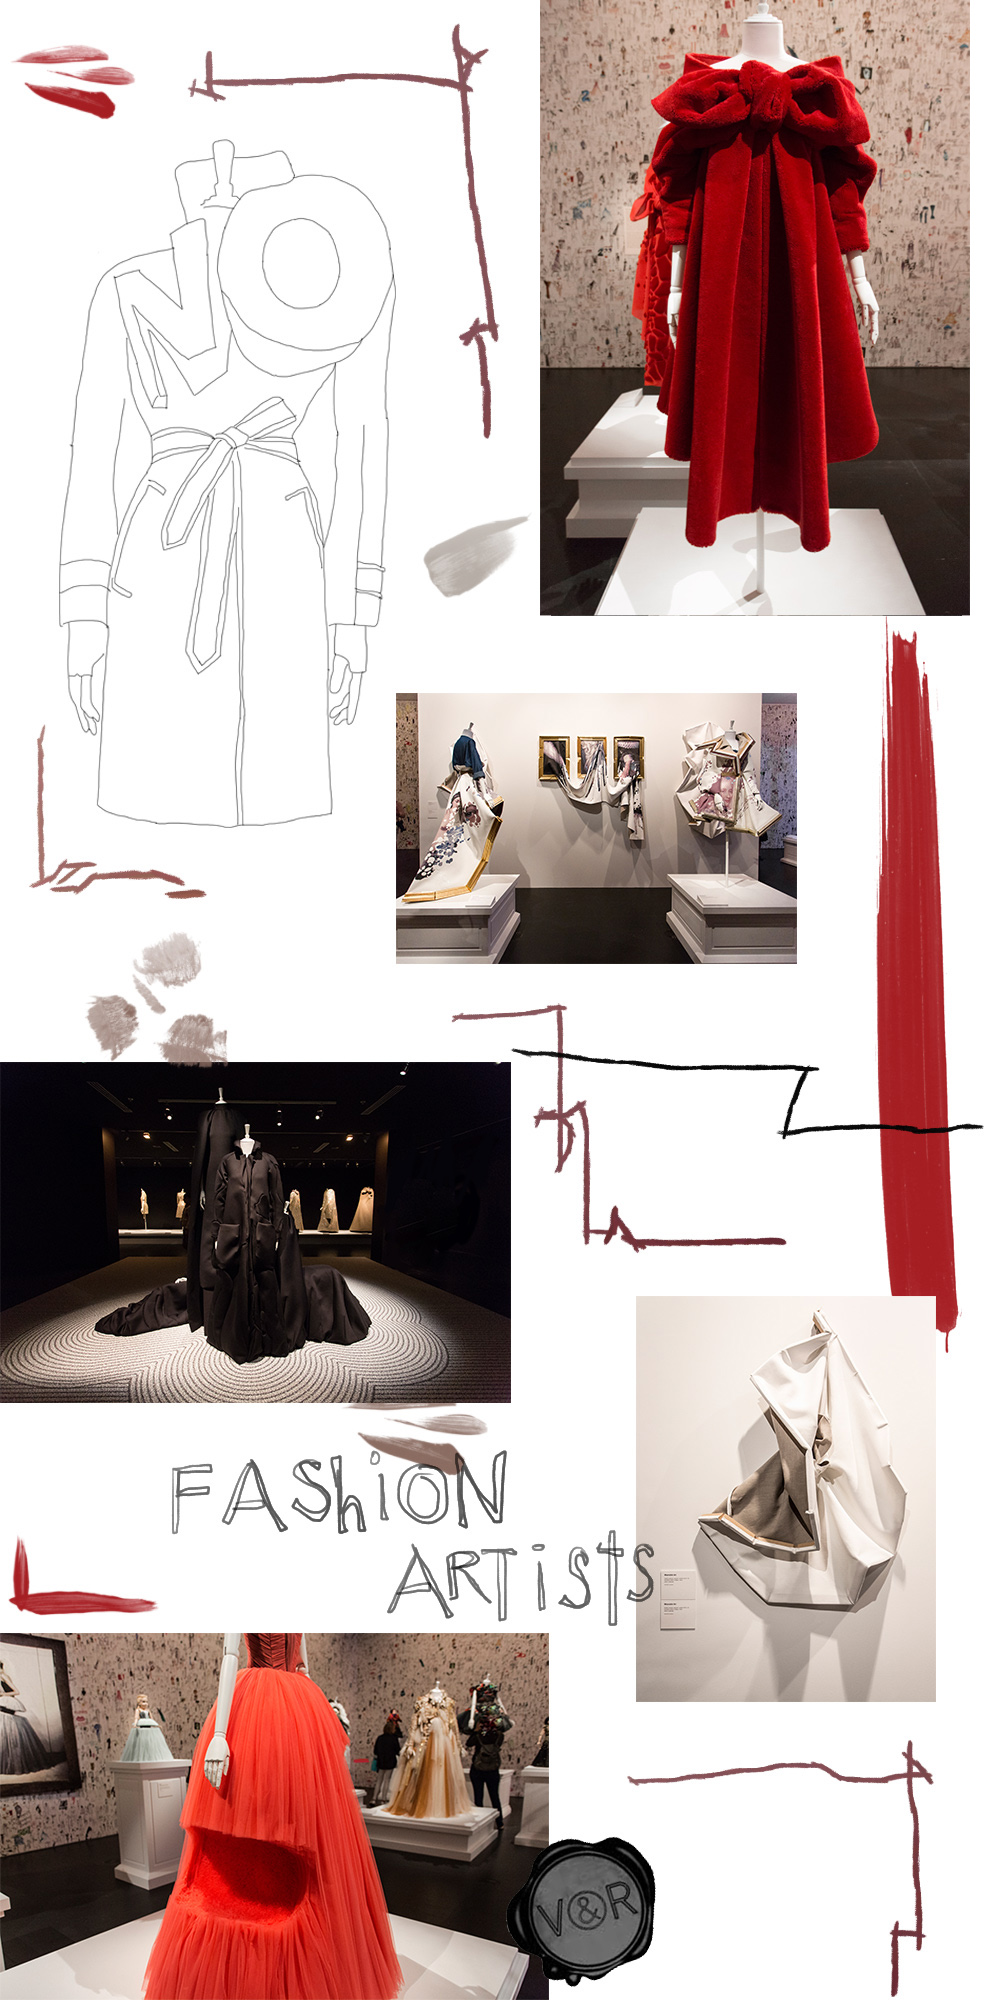 viktor-rolf-interview-ngv-gallery-oracle-fox-1